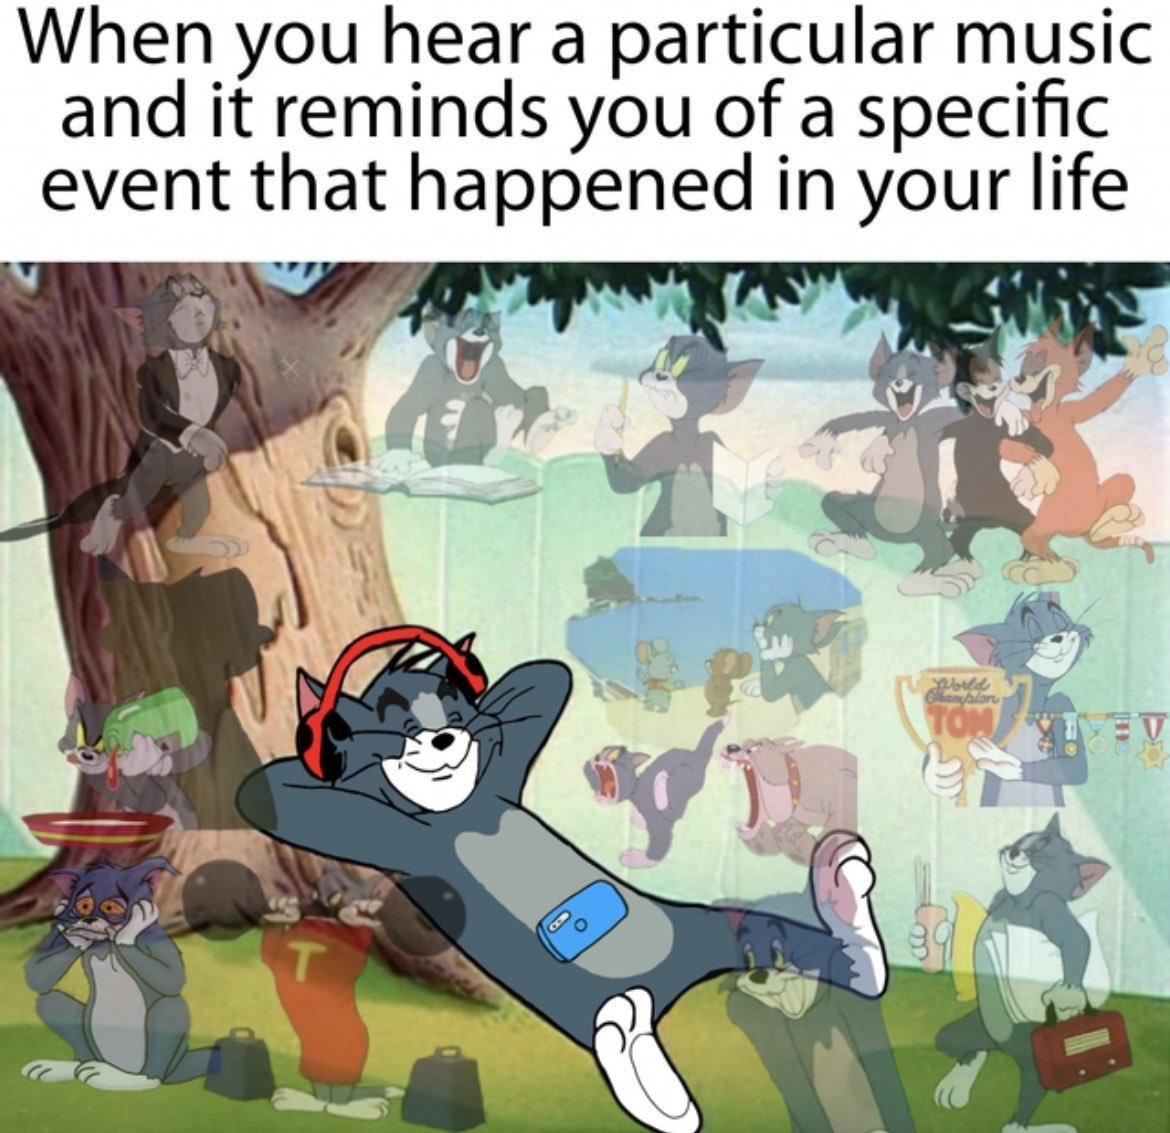 find a song youve heard before and feel the nostalgia - meme